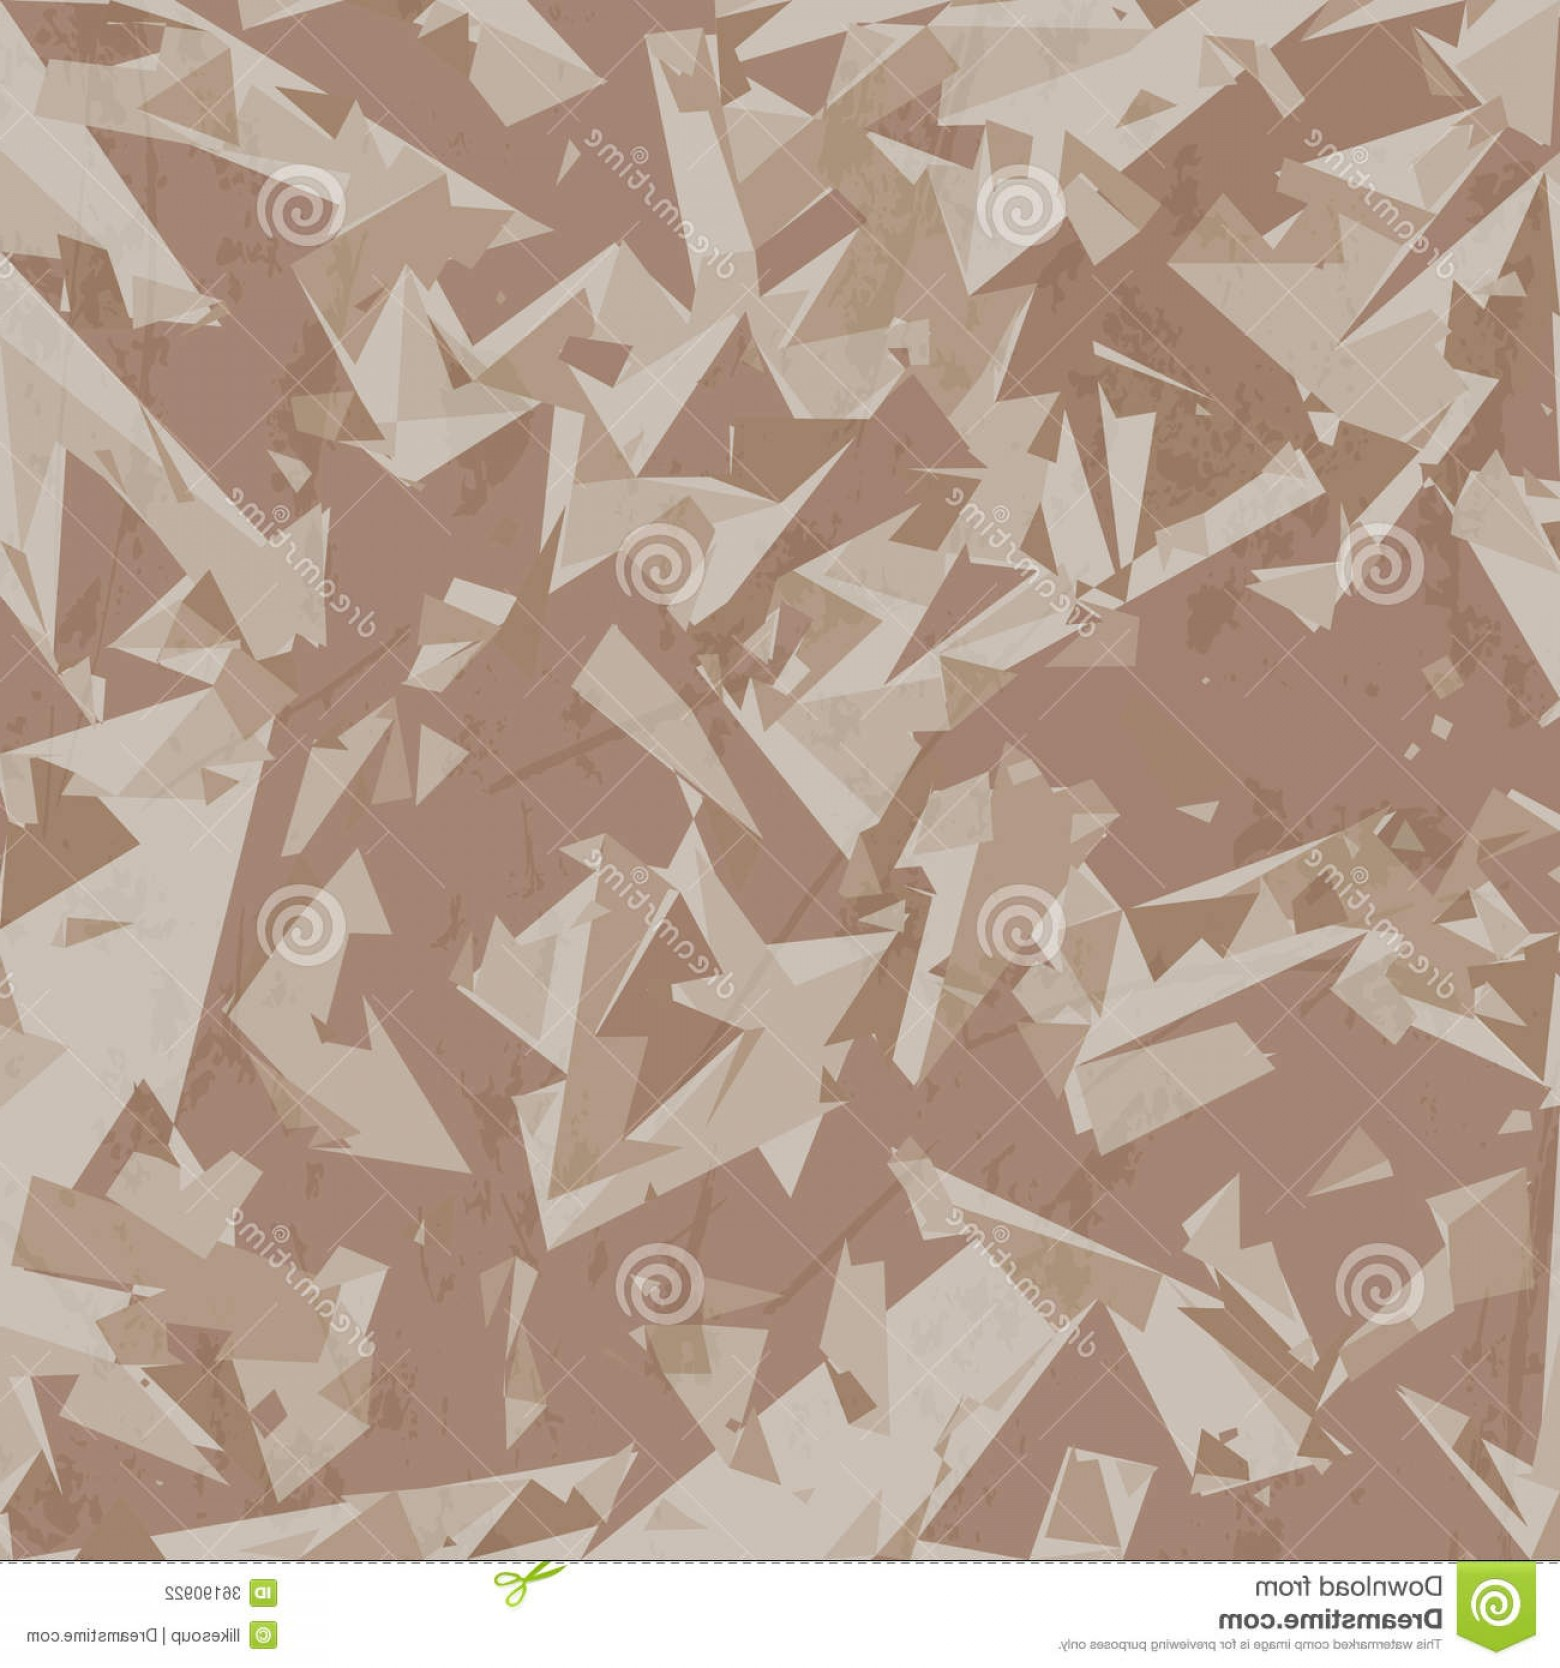 Army Camouflage Pattern Vector: Stock Photography Vector Desert Camouflage Background Army Image